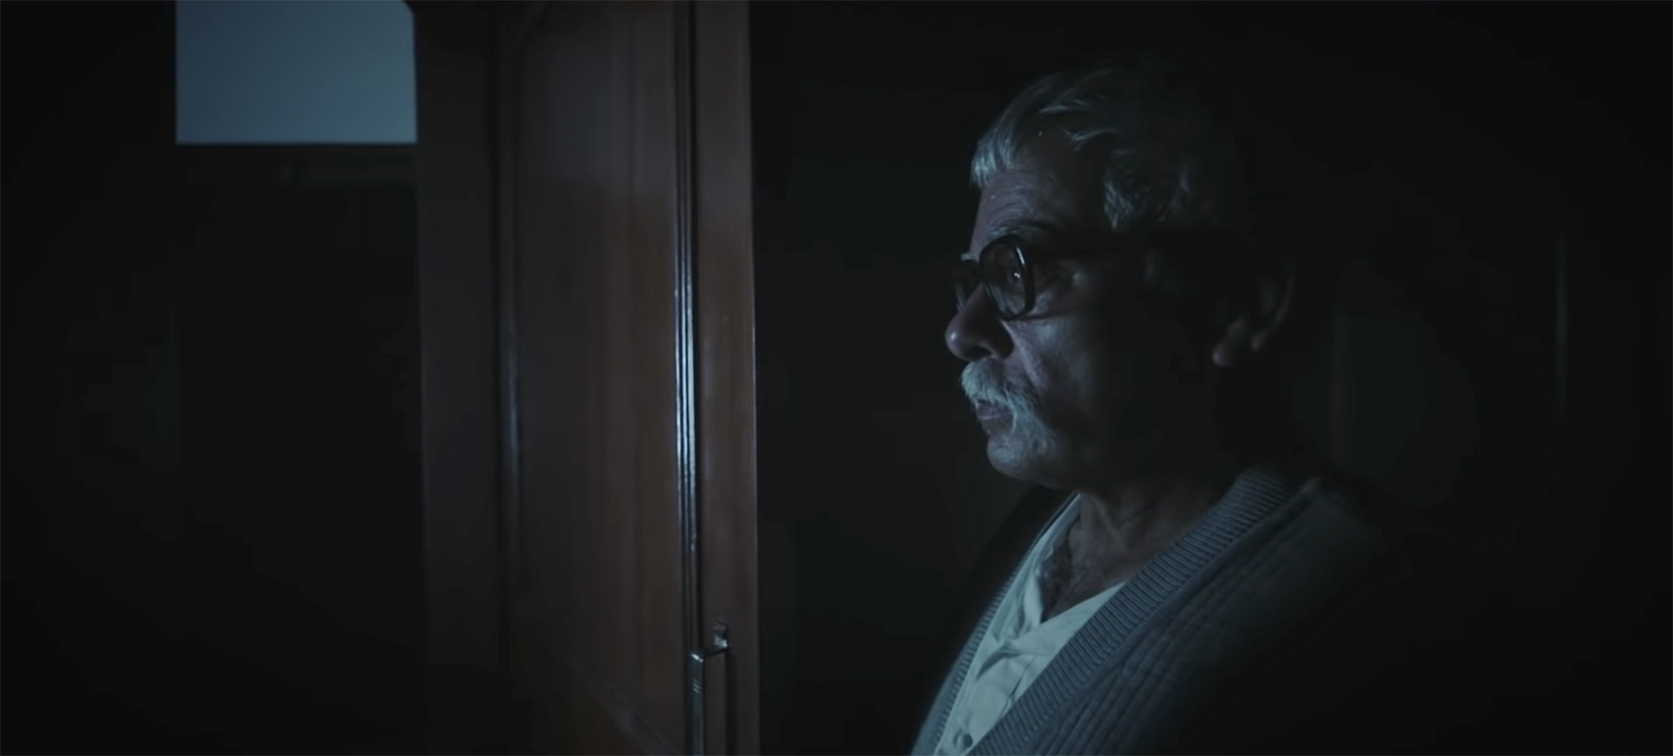 Friends adult diapers launches film to educate the risk elders face using the toilet at night